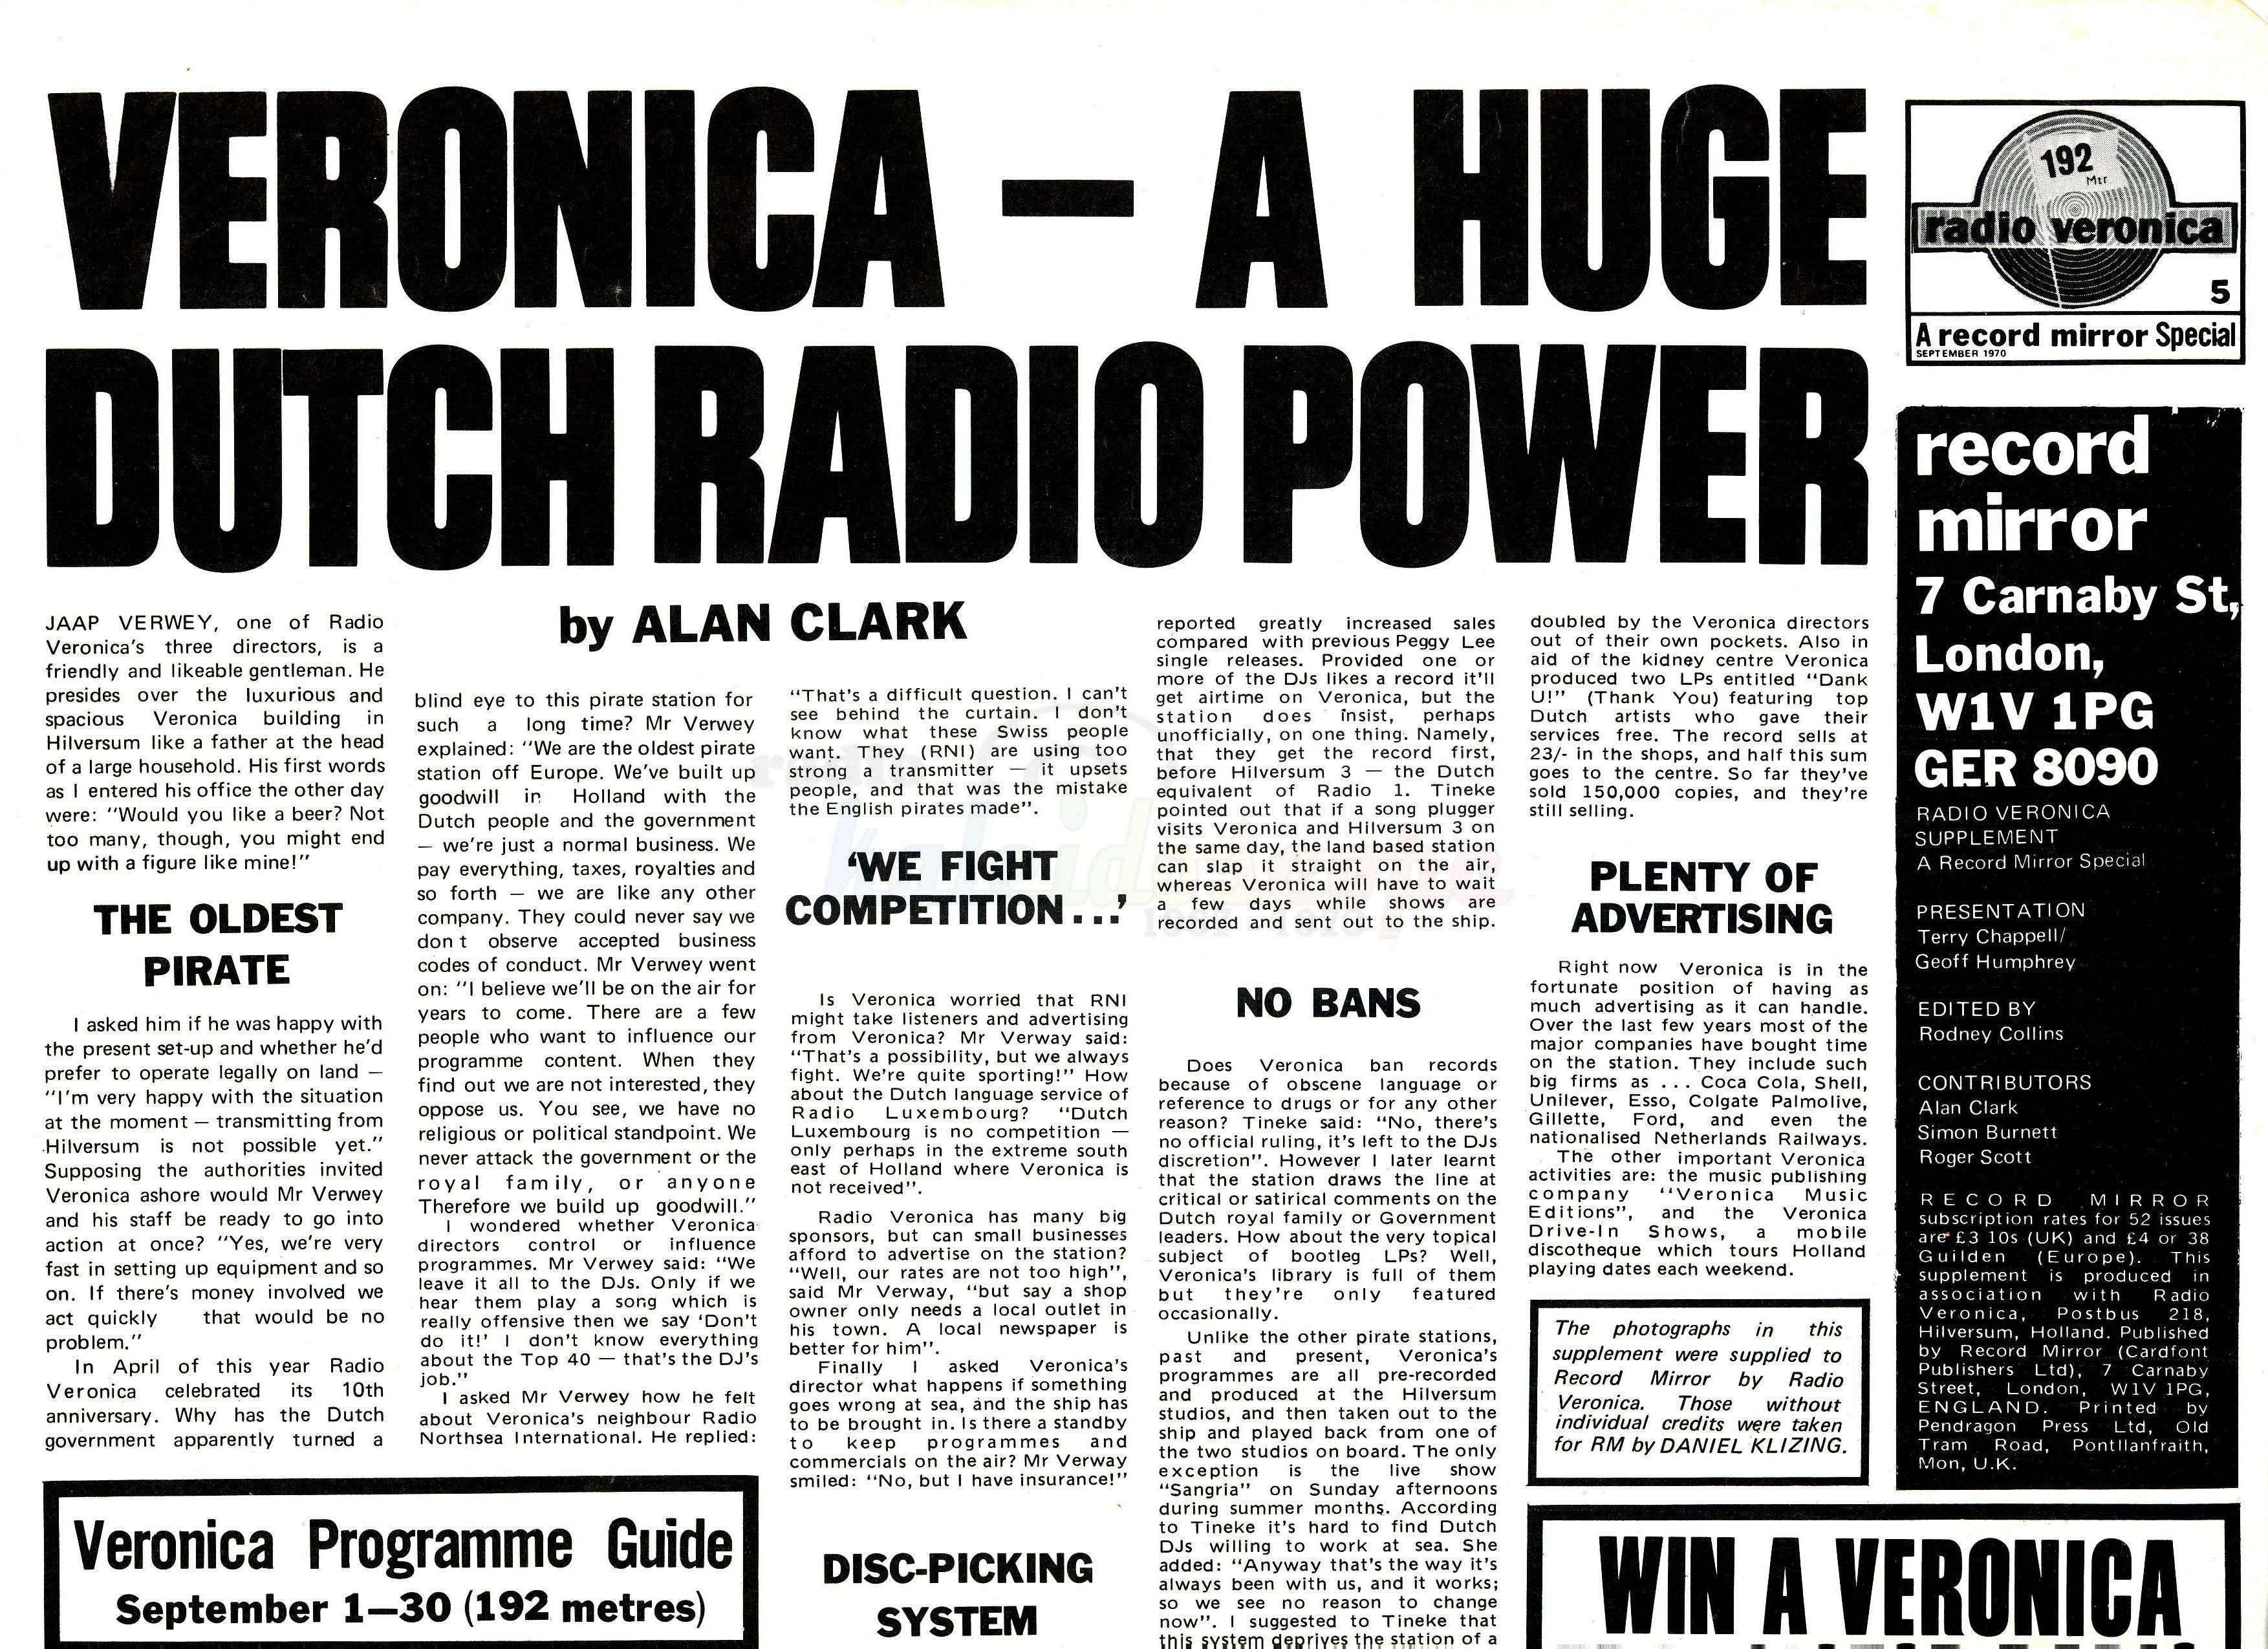 Radio Veronica - 1970 (Courtesy Linda Van Schegan)